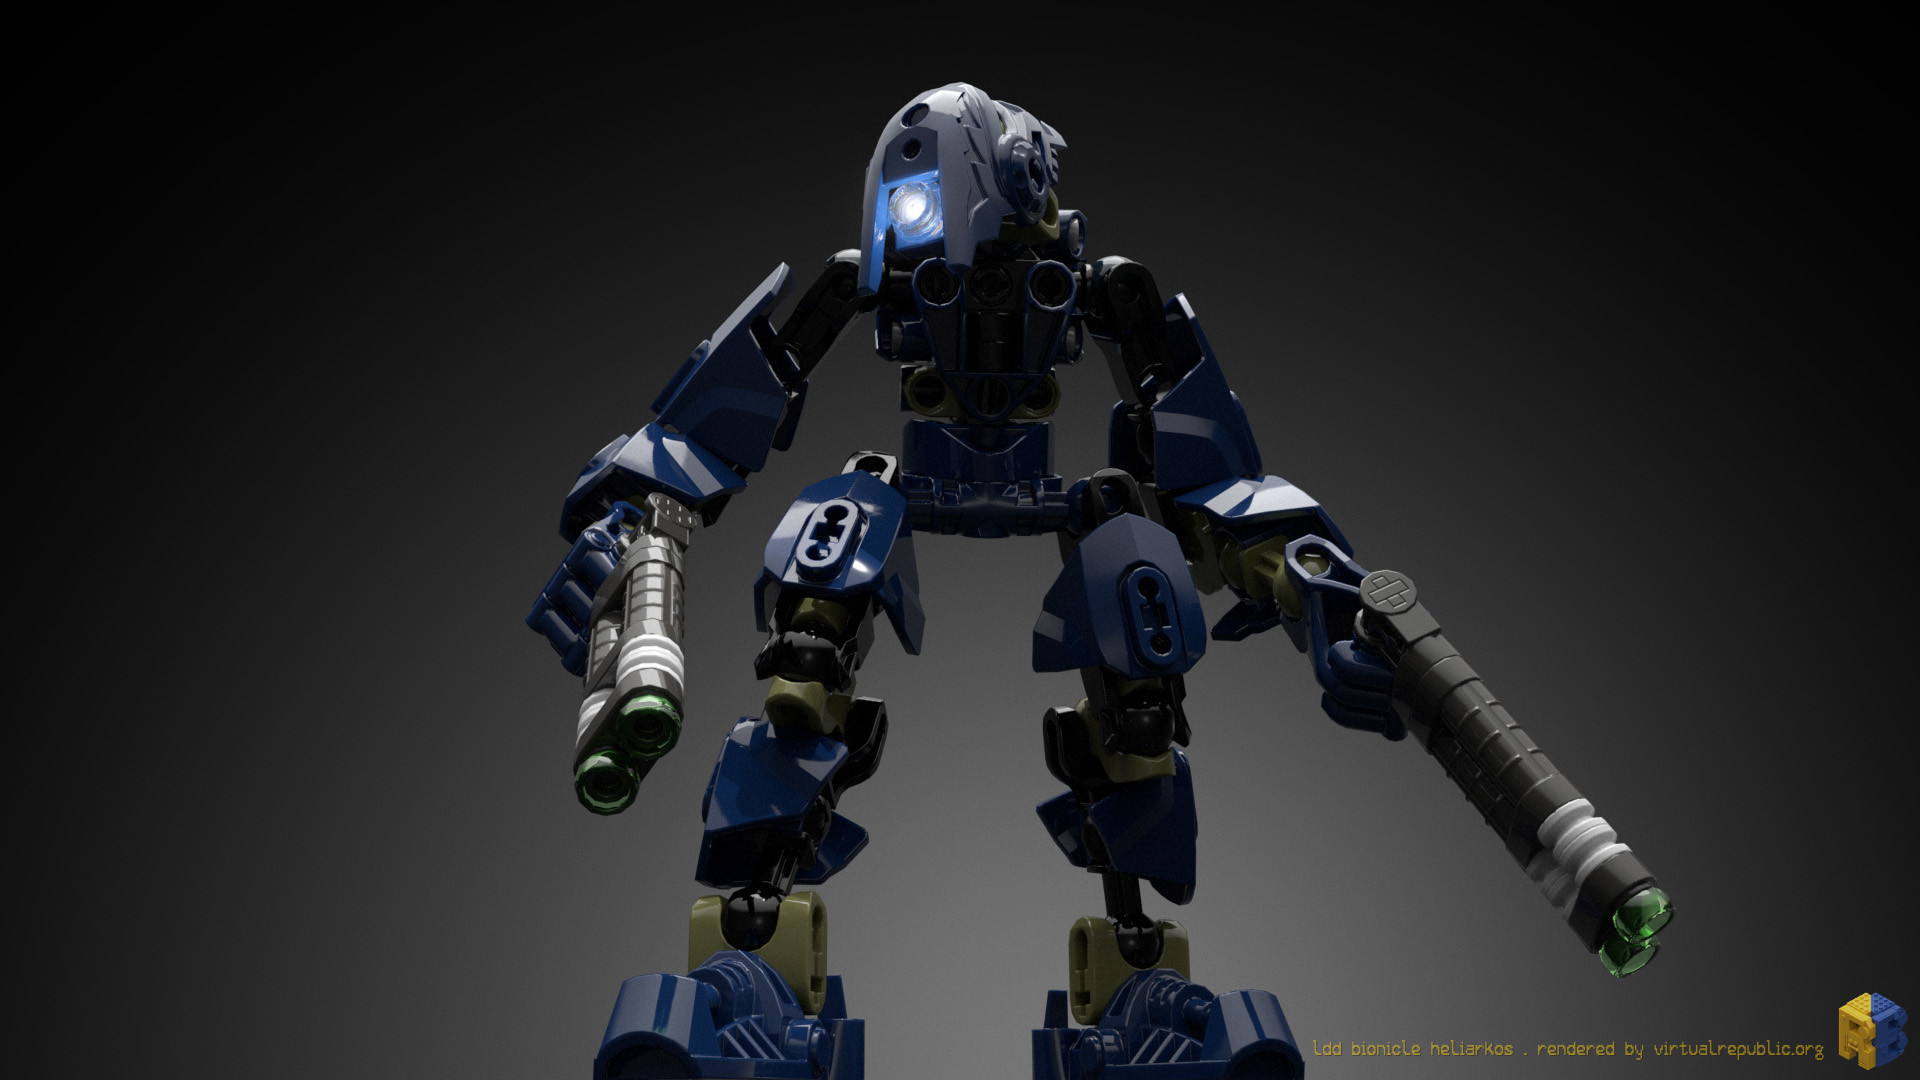 Renderbricks ® - LEGO® LDD Bionicle